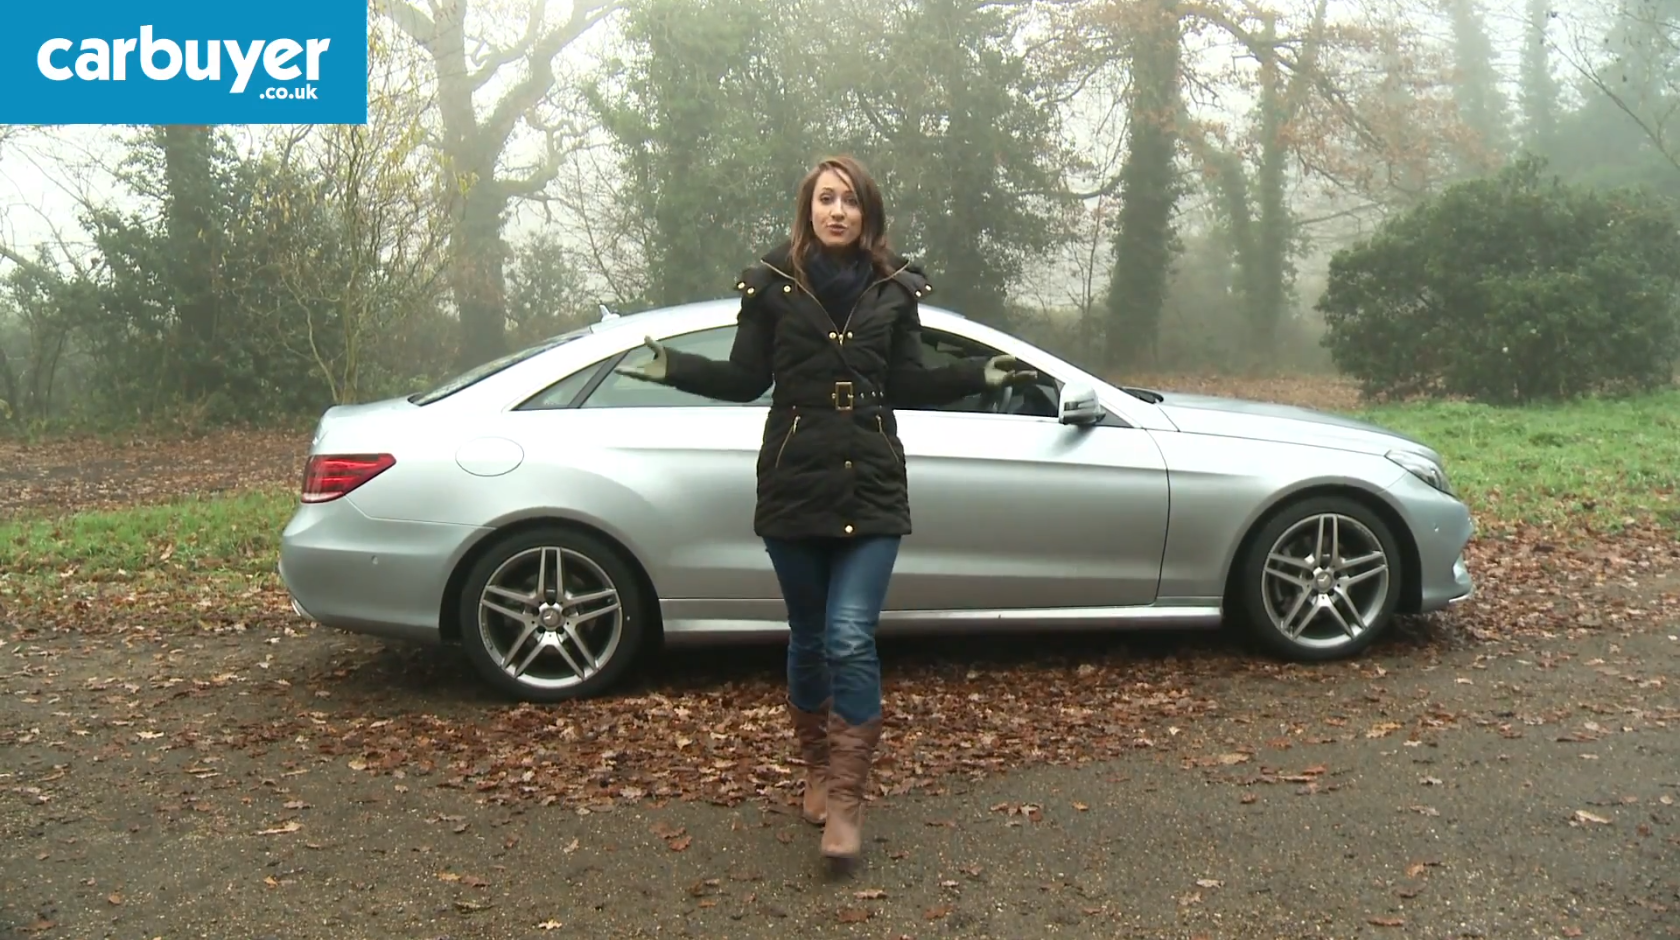 Mercedes Benz E Class Coupe C207 Gets Reviewed By Carbuyer